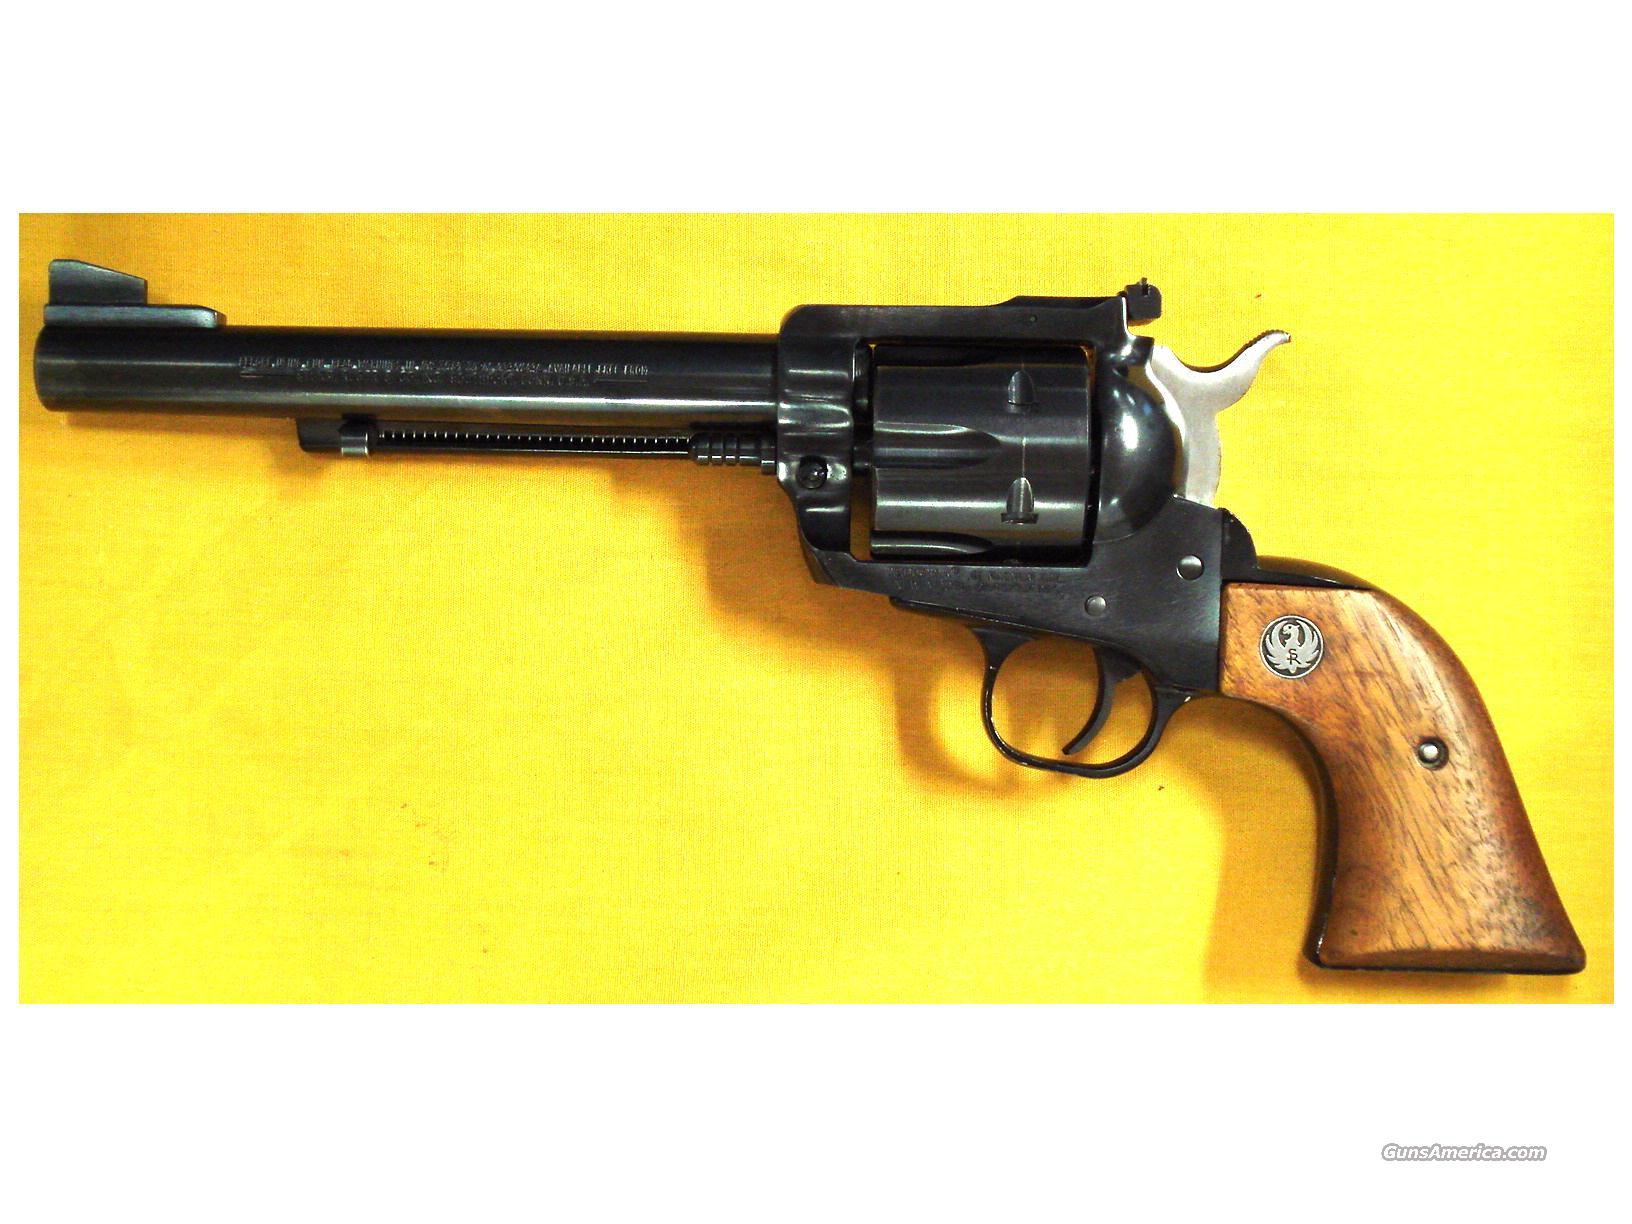 "RUGER BLACKHAWK .41MAG 6 1/2"" BBL  Guns > Pistols > Ruger Single Action Revolvers > Blackhawk Type"